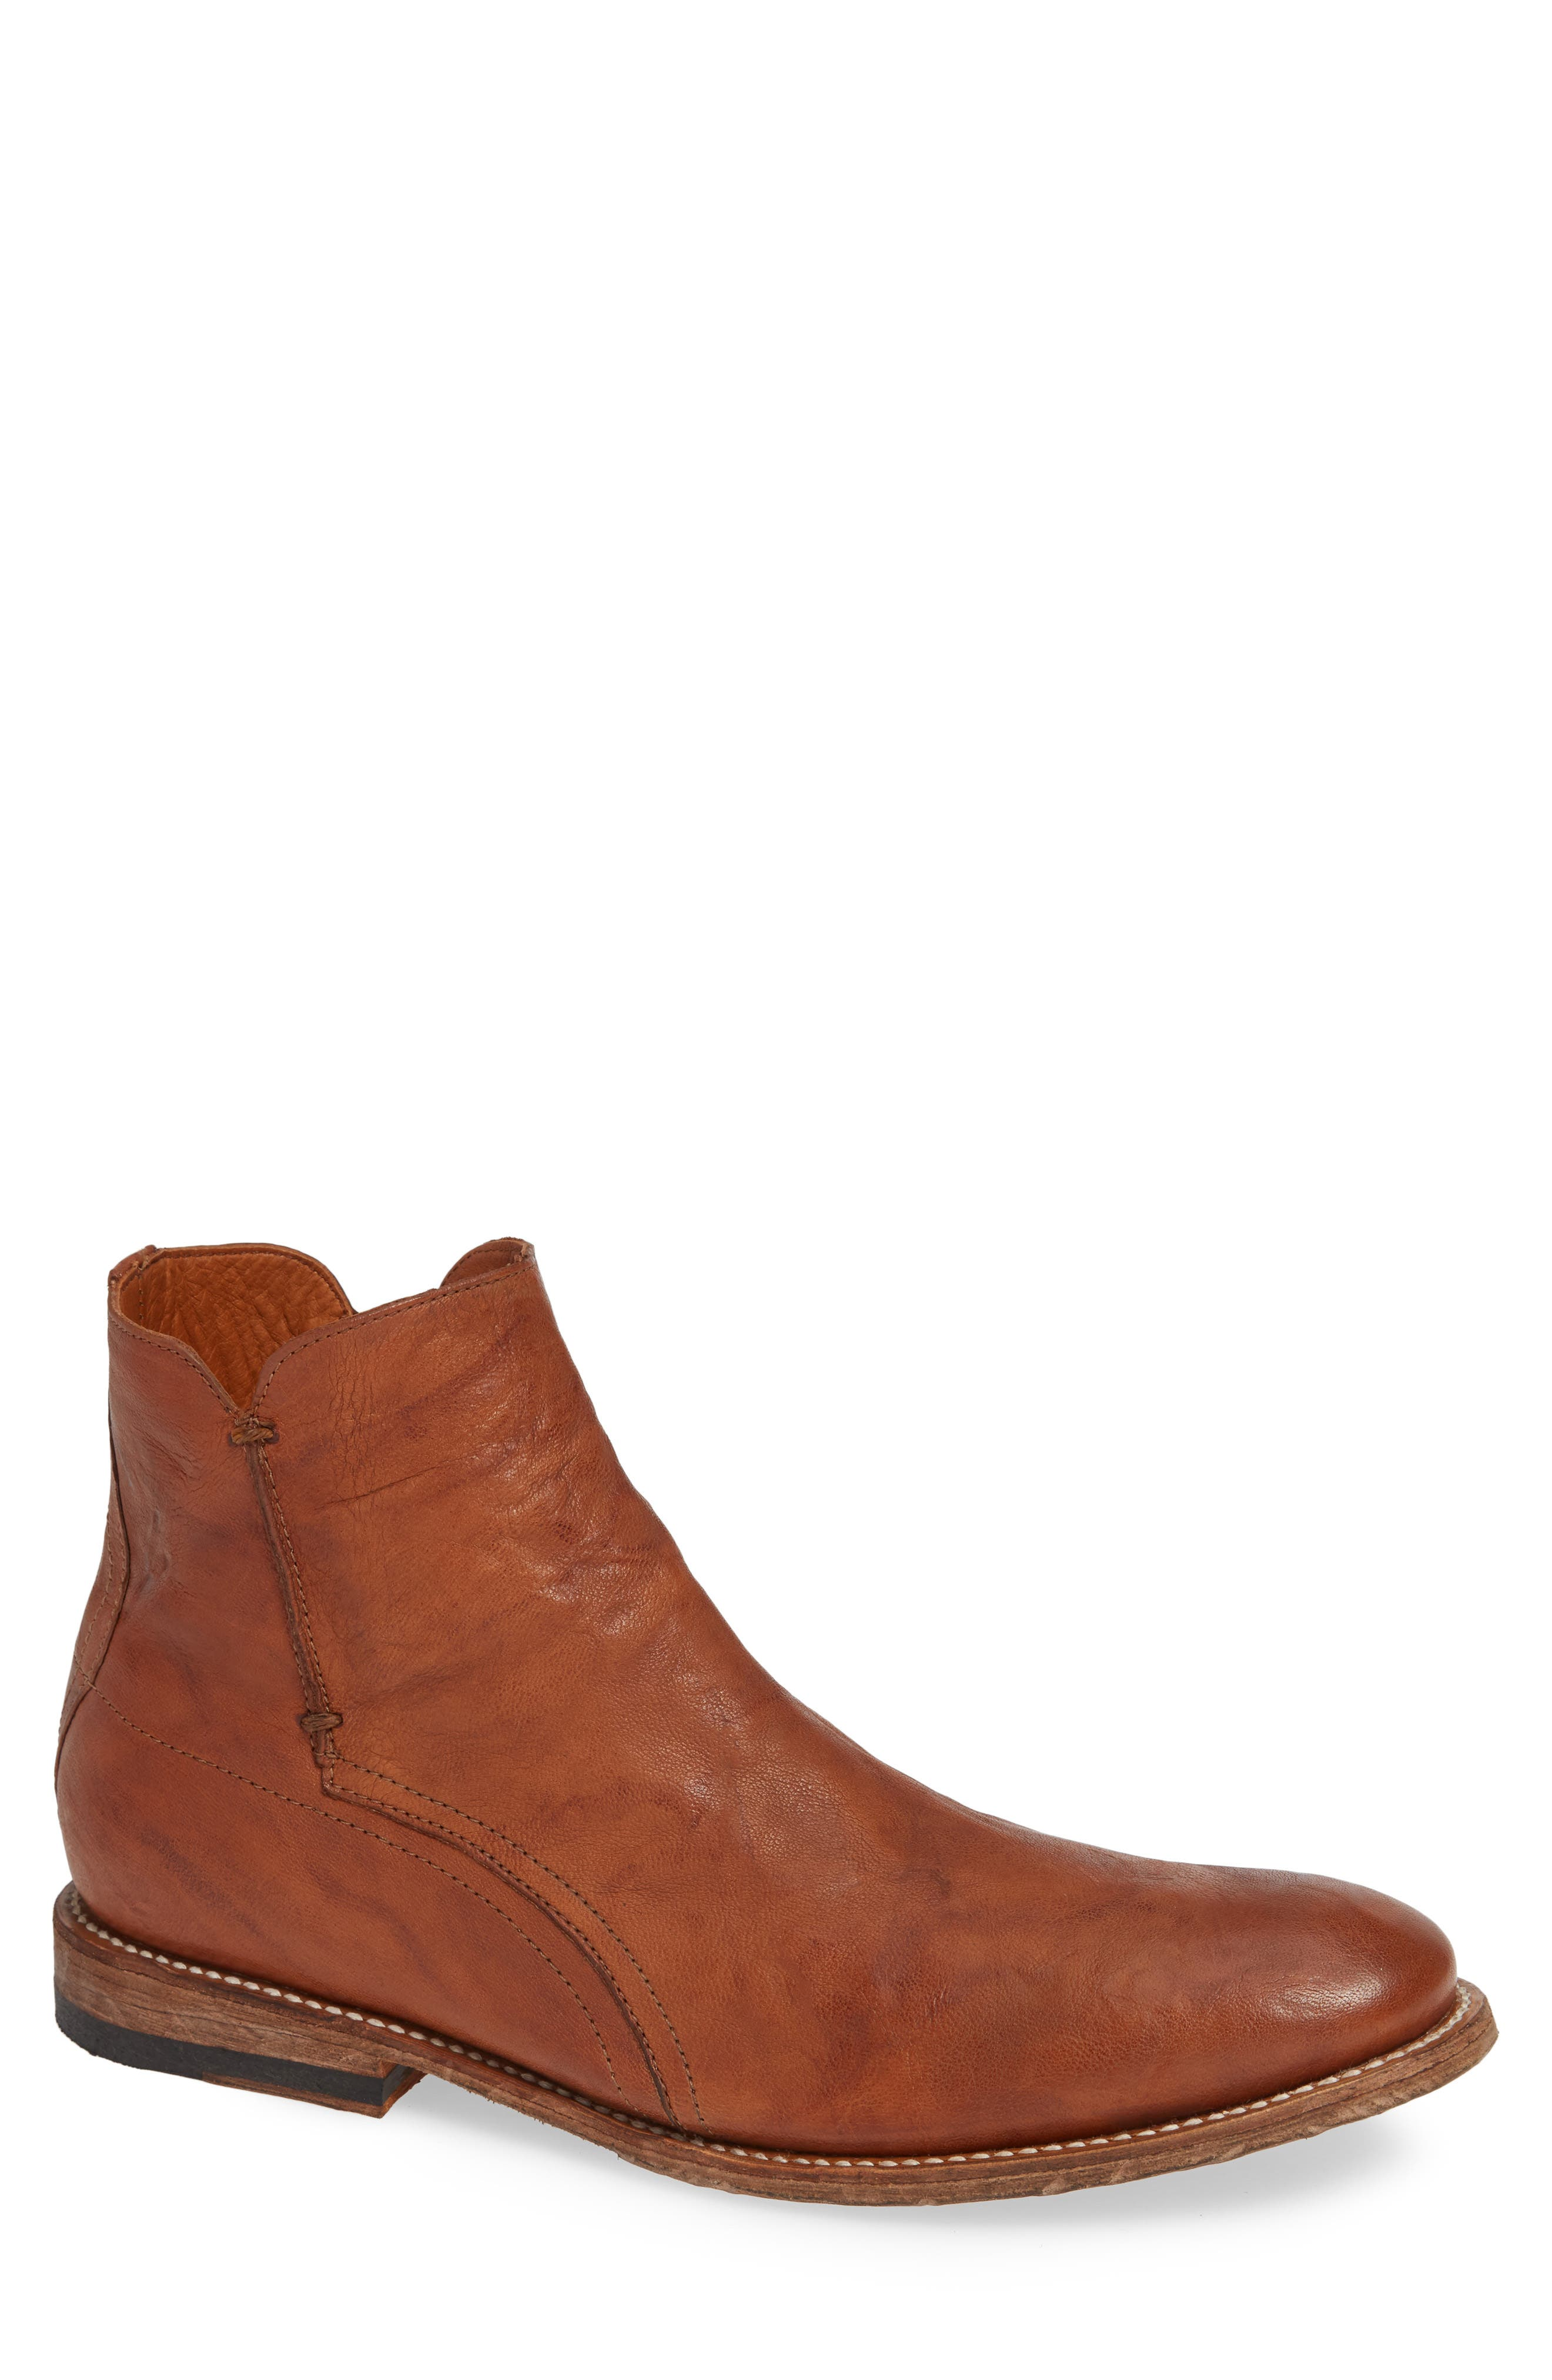 TWO24 by Ariat Lockwood Zip Boot, Main, color, COGNAC LEATHER